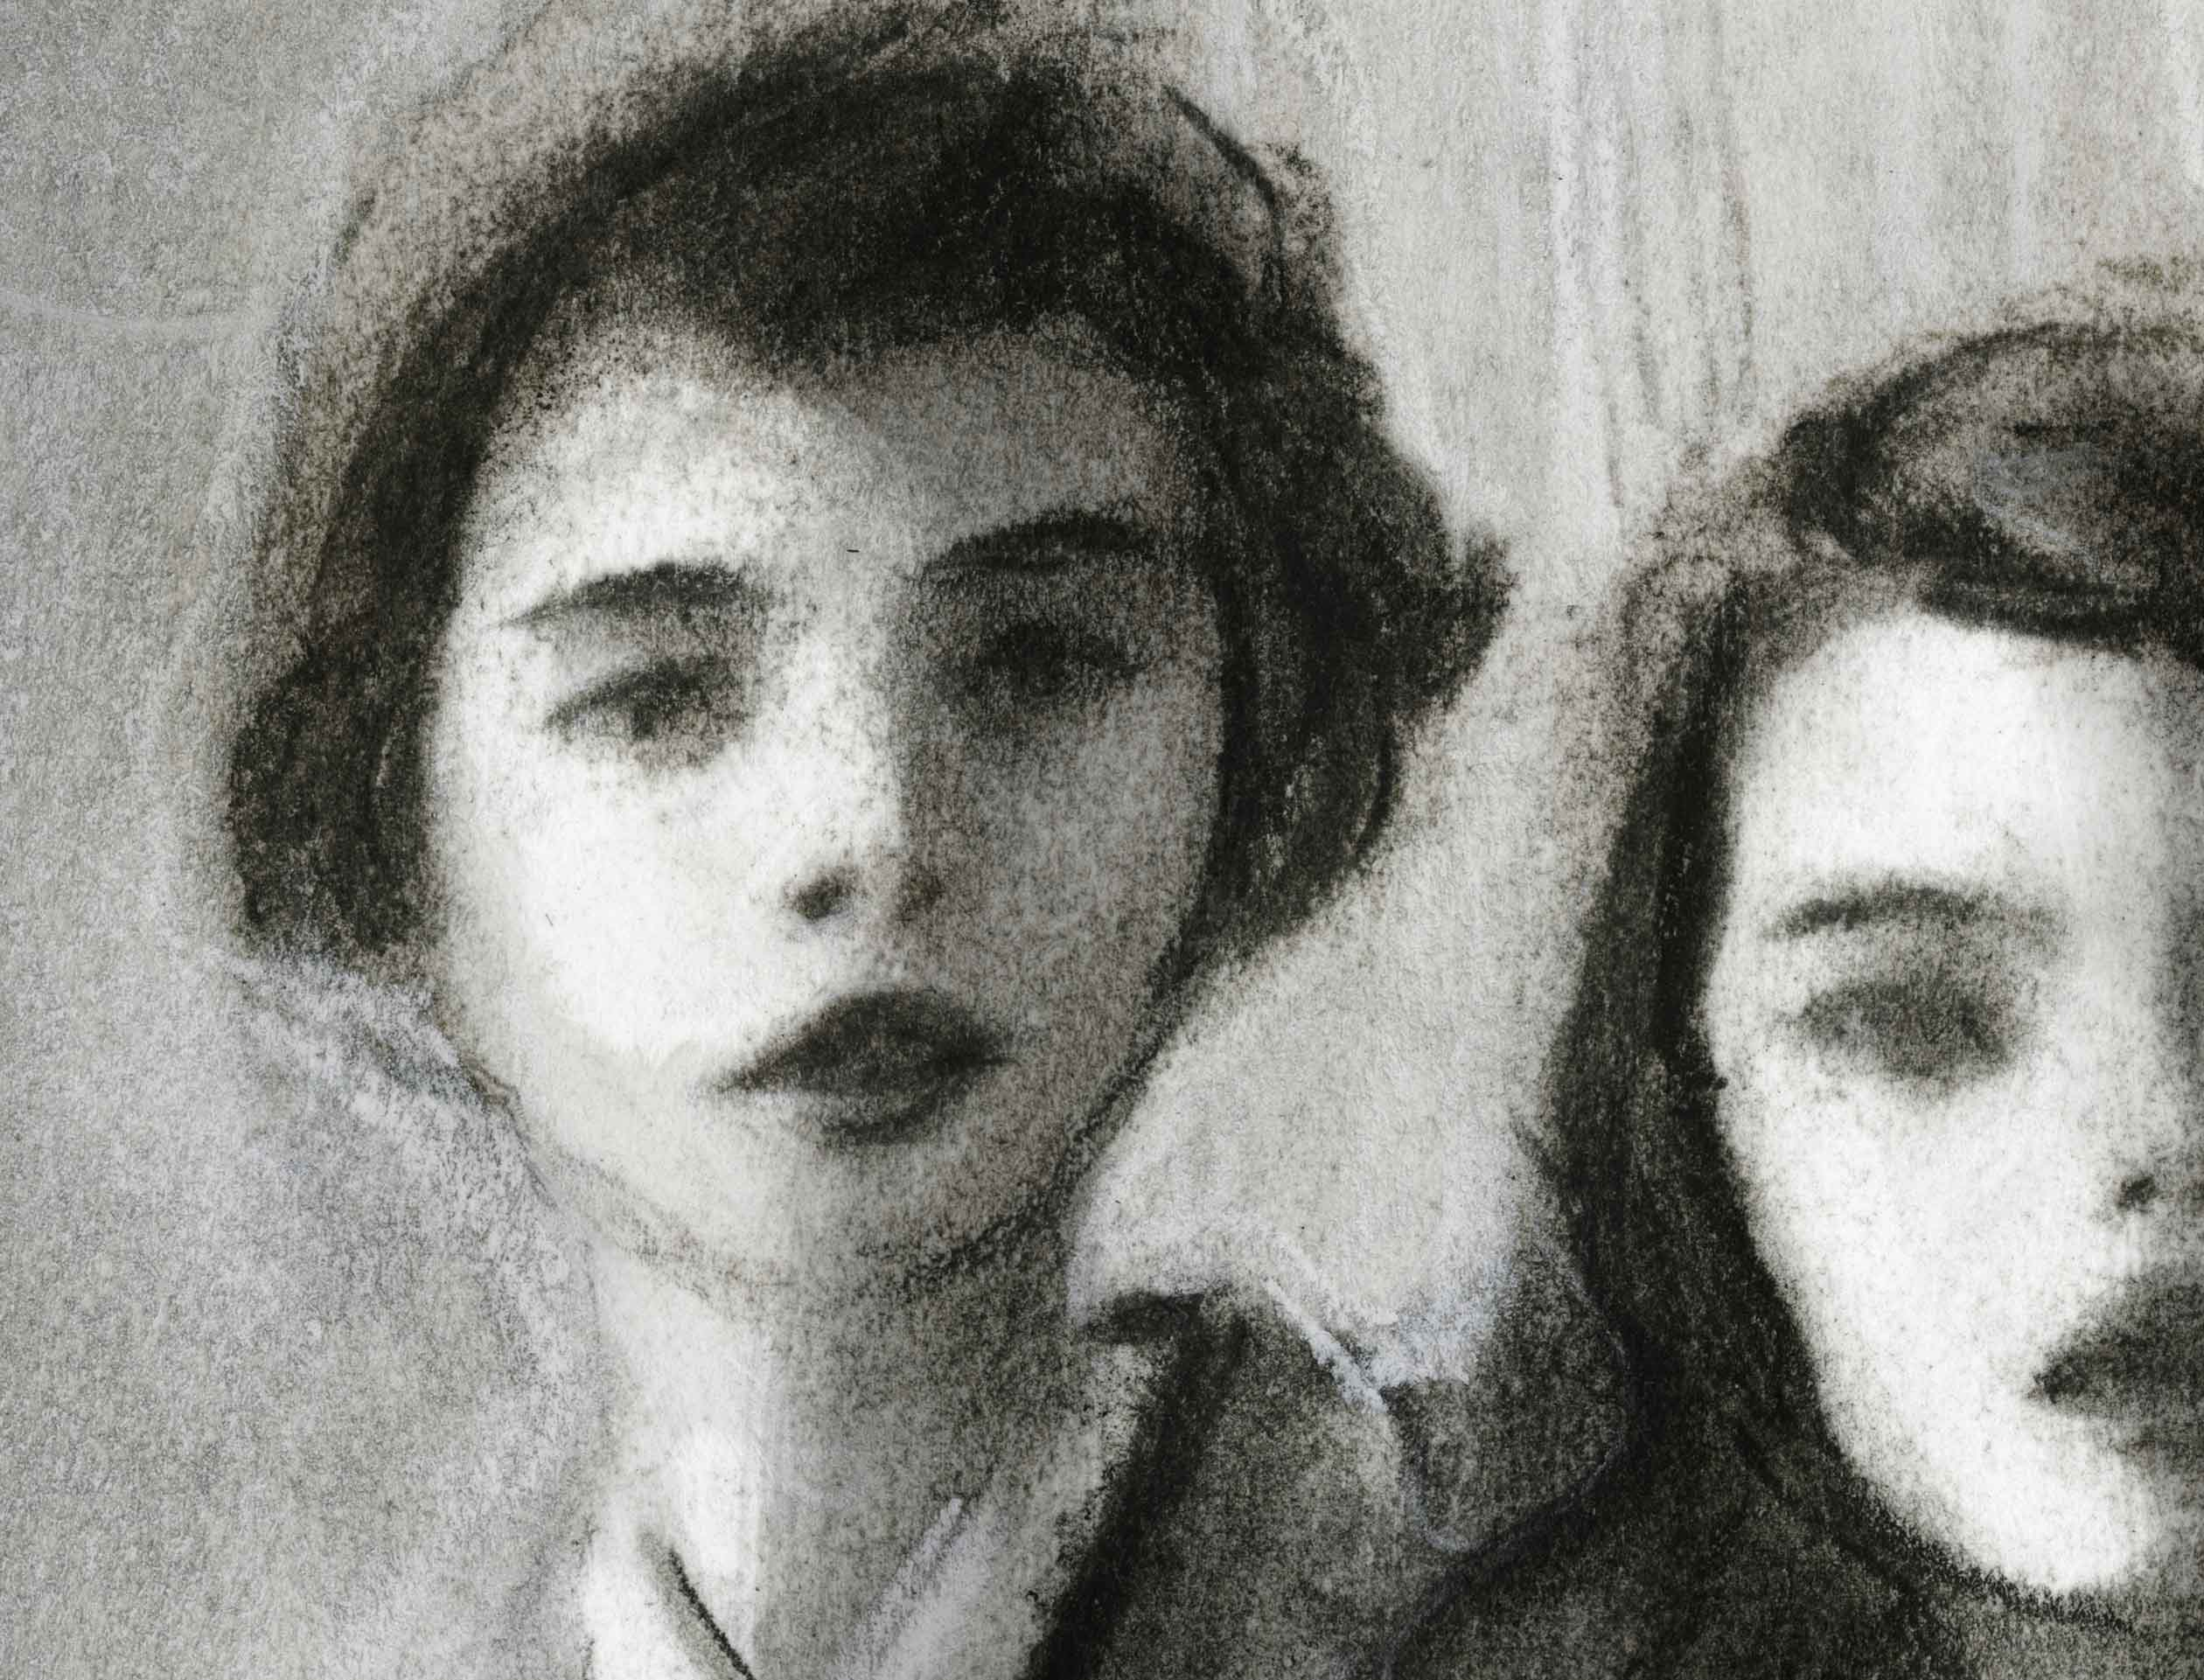 Detail shot 1 of girls face from Charcoal Sketch of 3 school girls from the 1940s life magazine